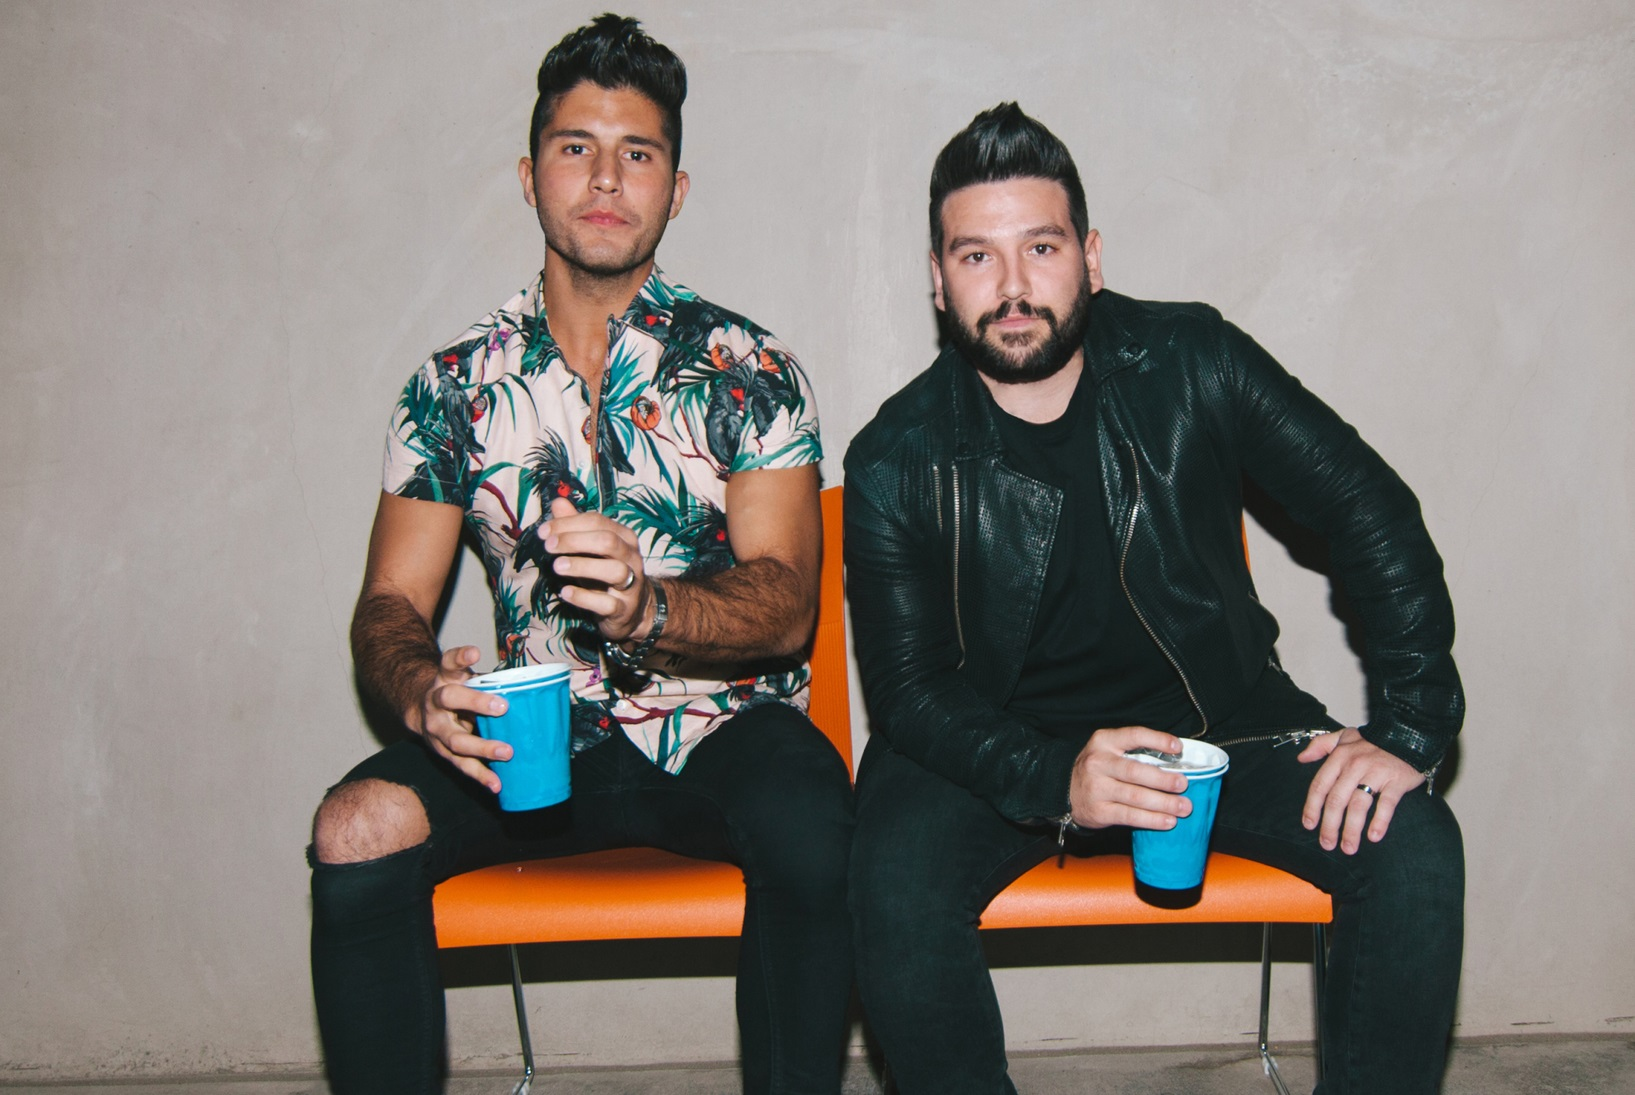 Album Review: Dan + Shay's Self-Titled Album